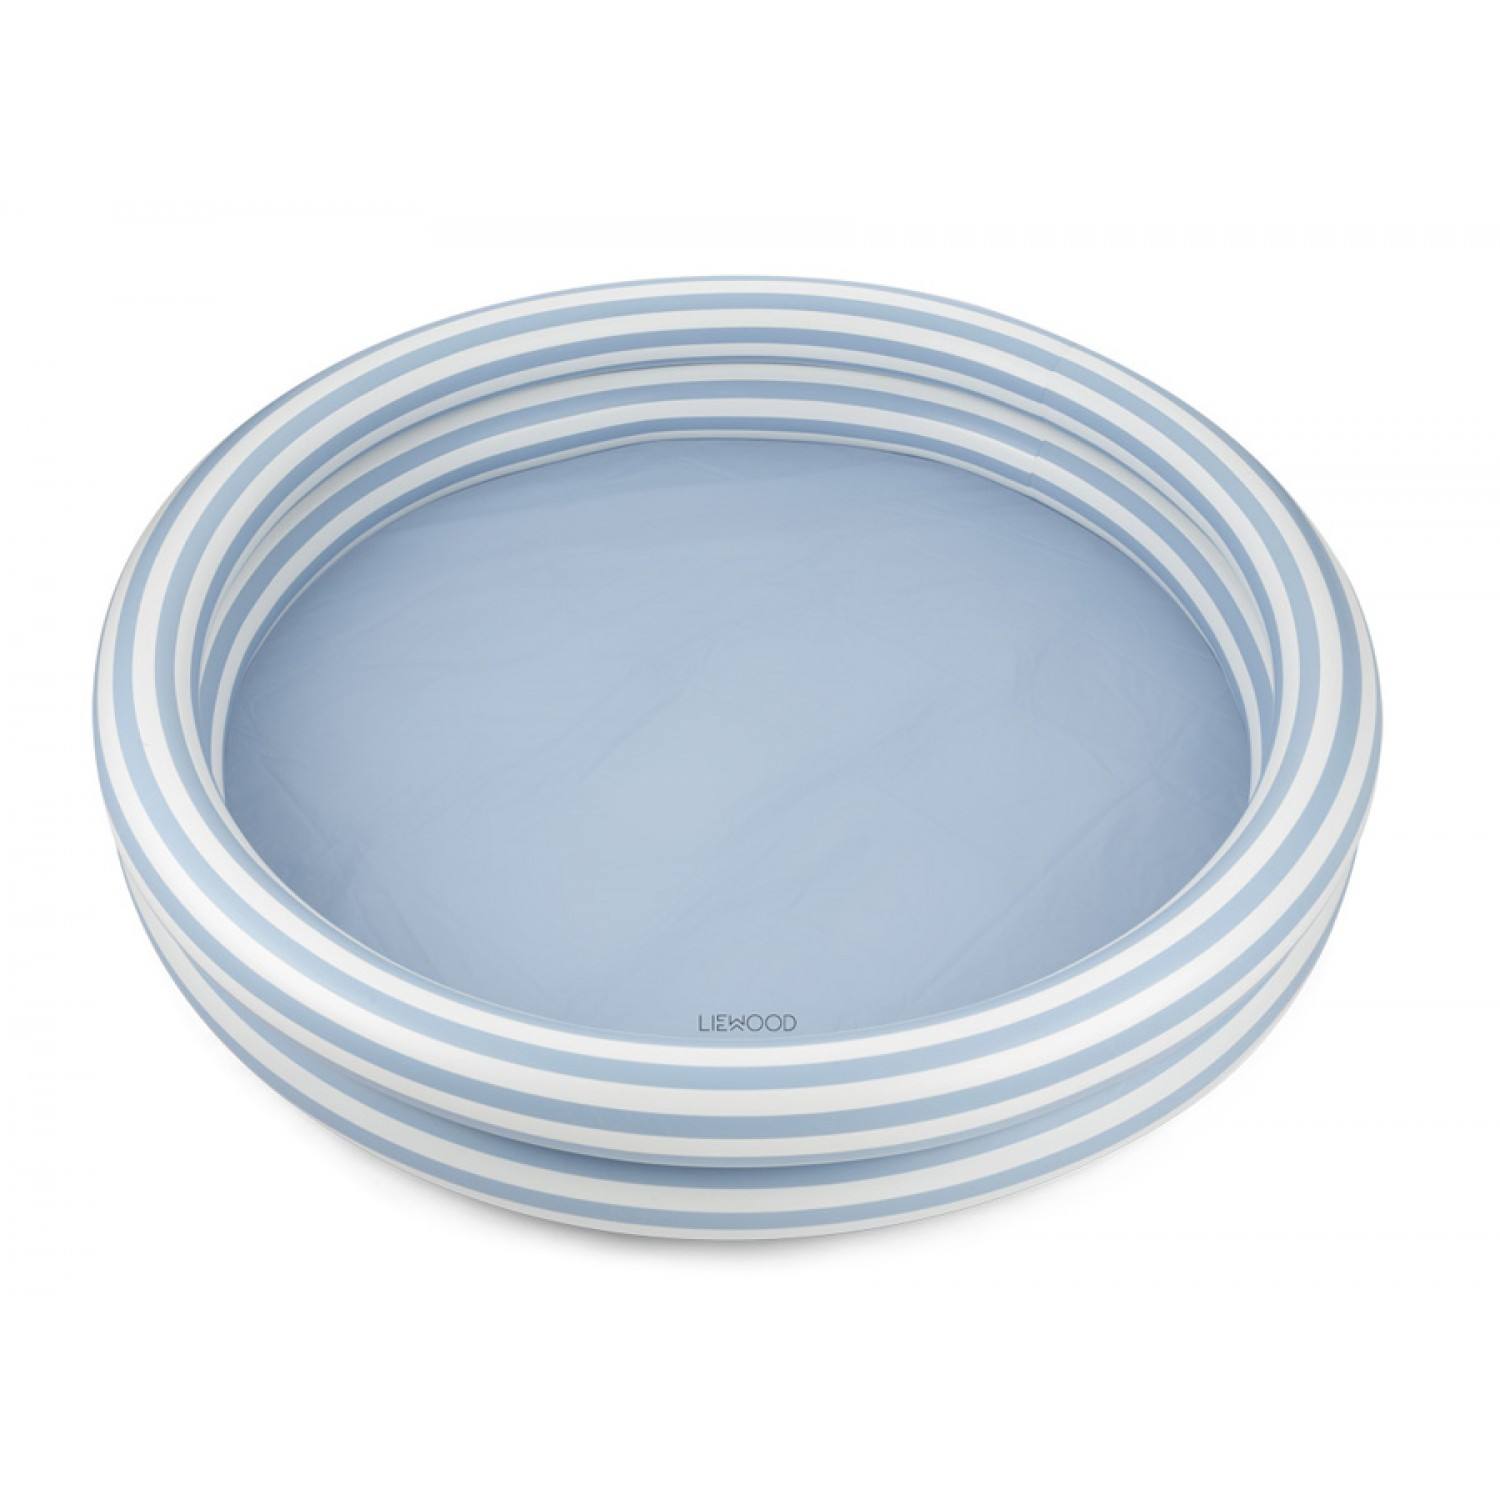 Savannah pool | Stripe: Sea blue/creme de la creme